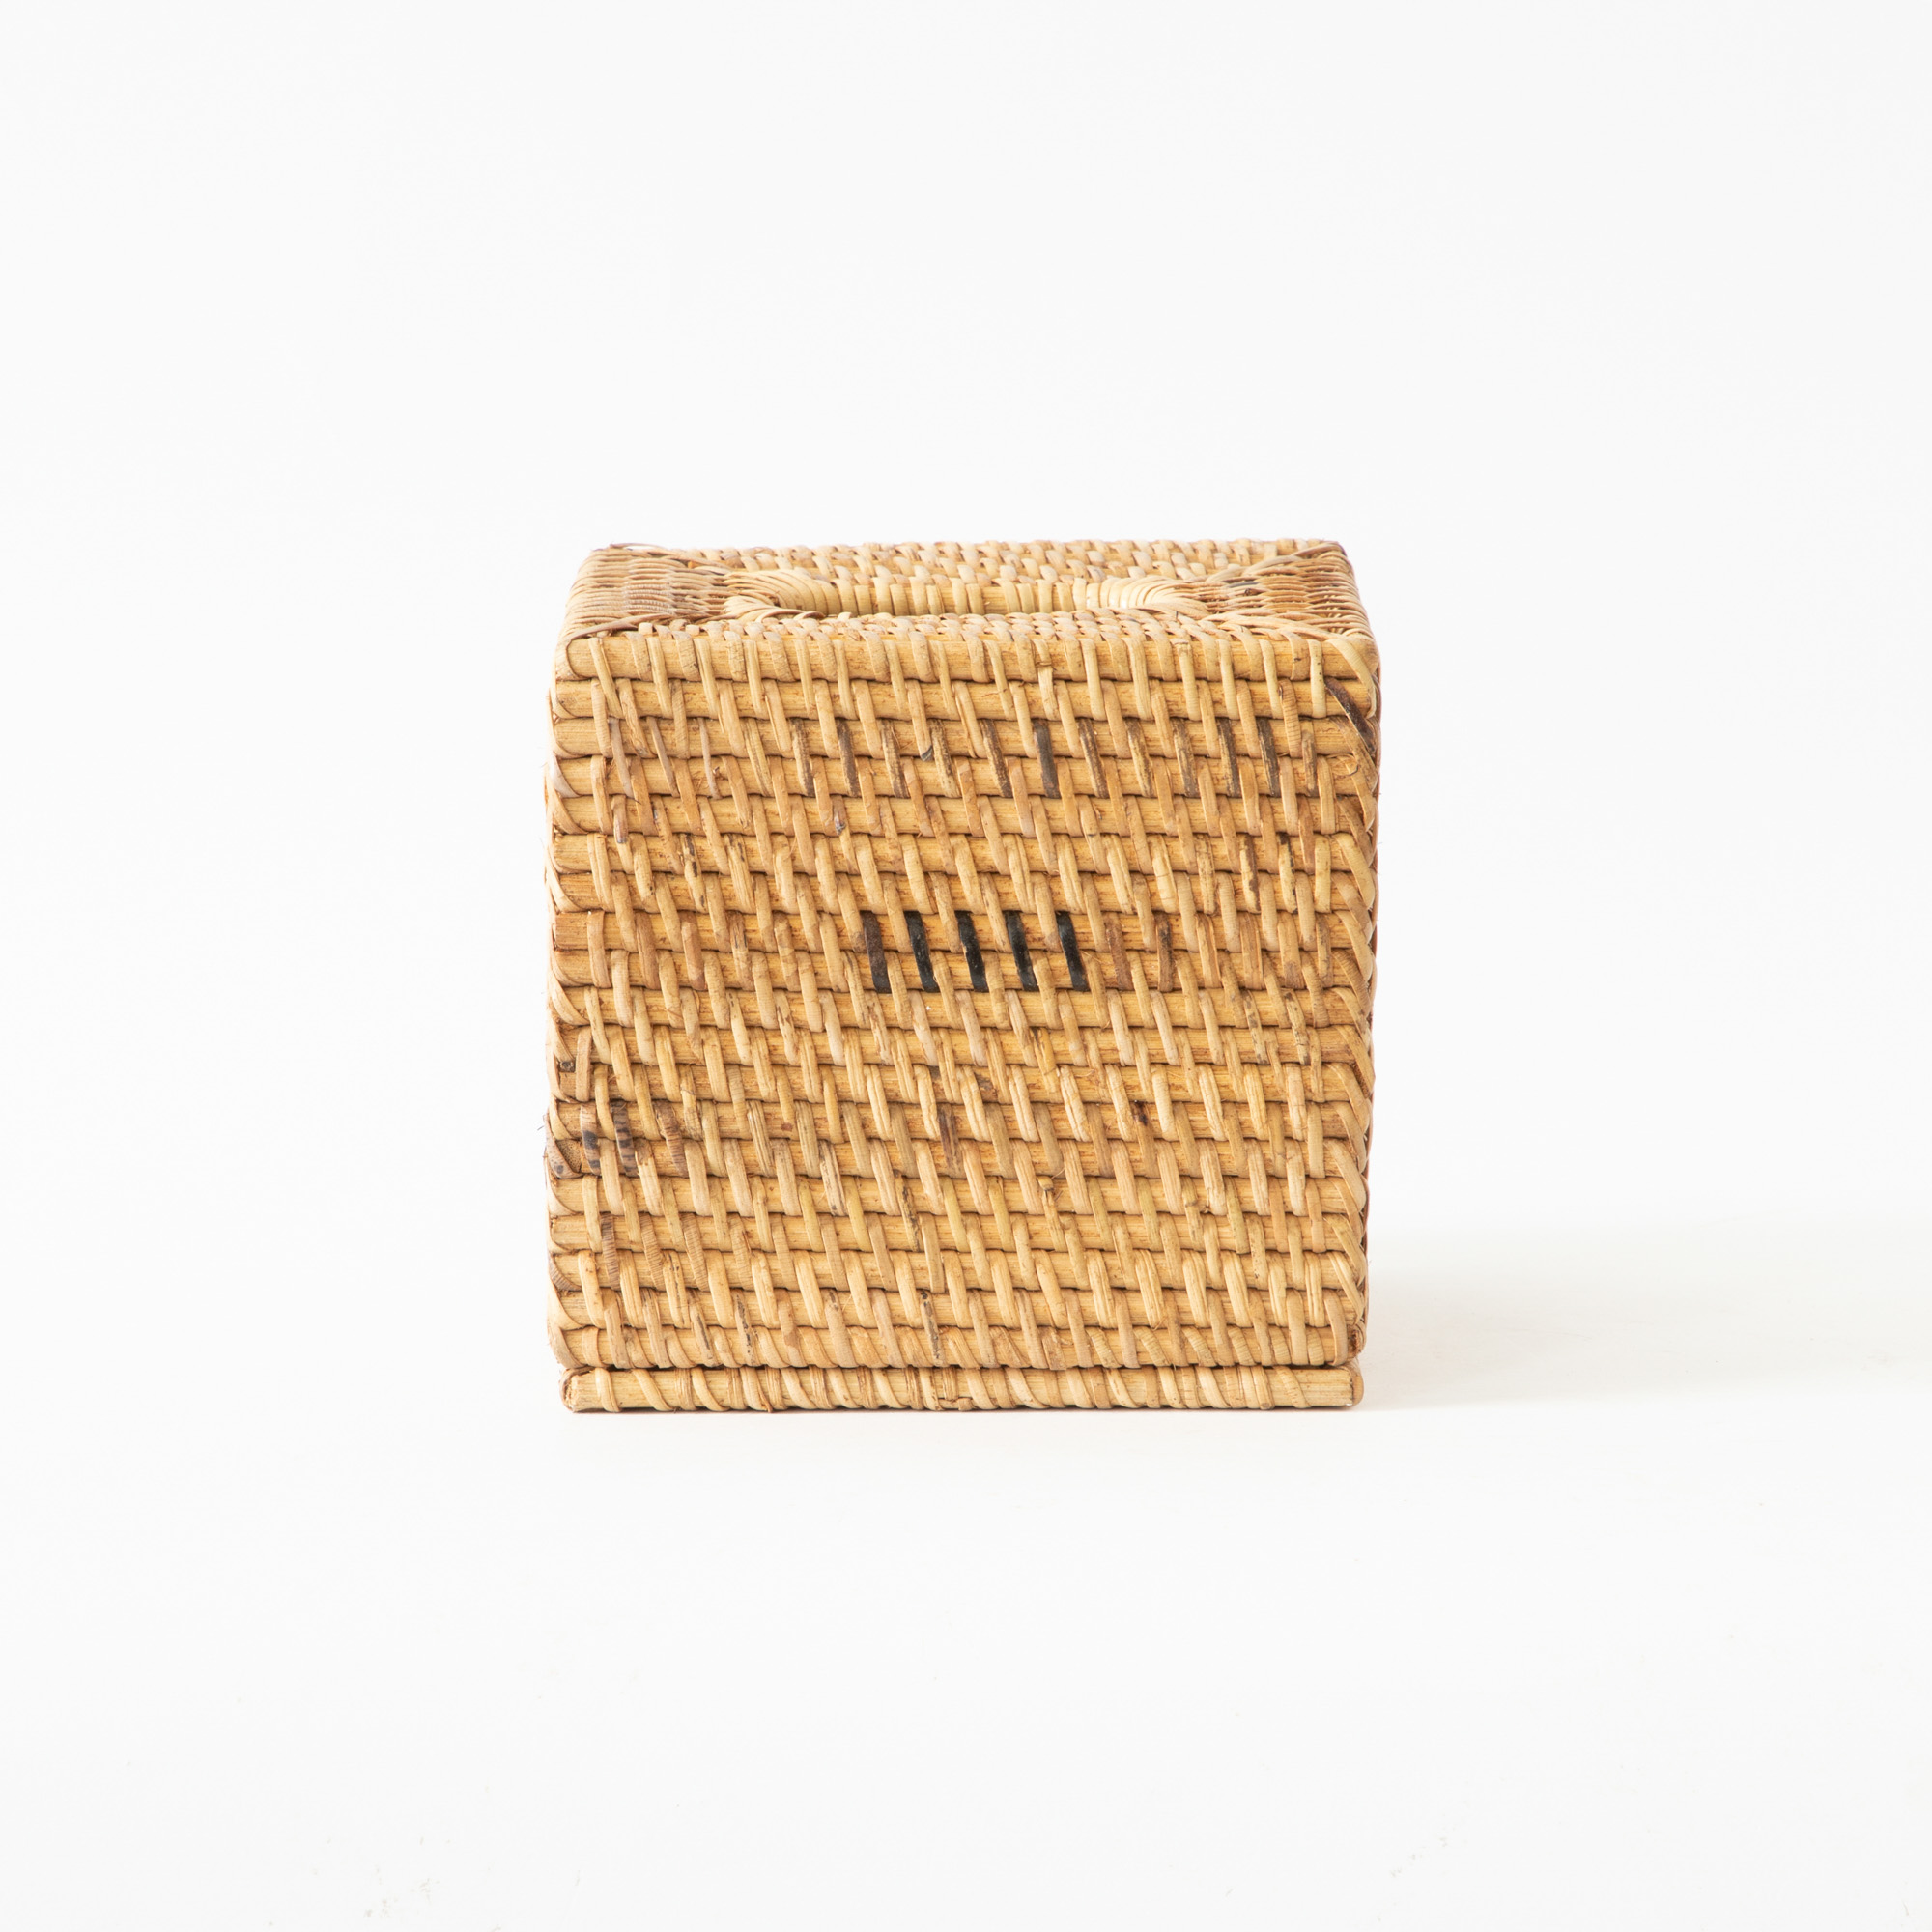 Indonesian Rattan Paper Holder